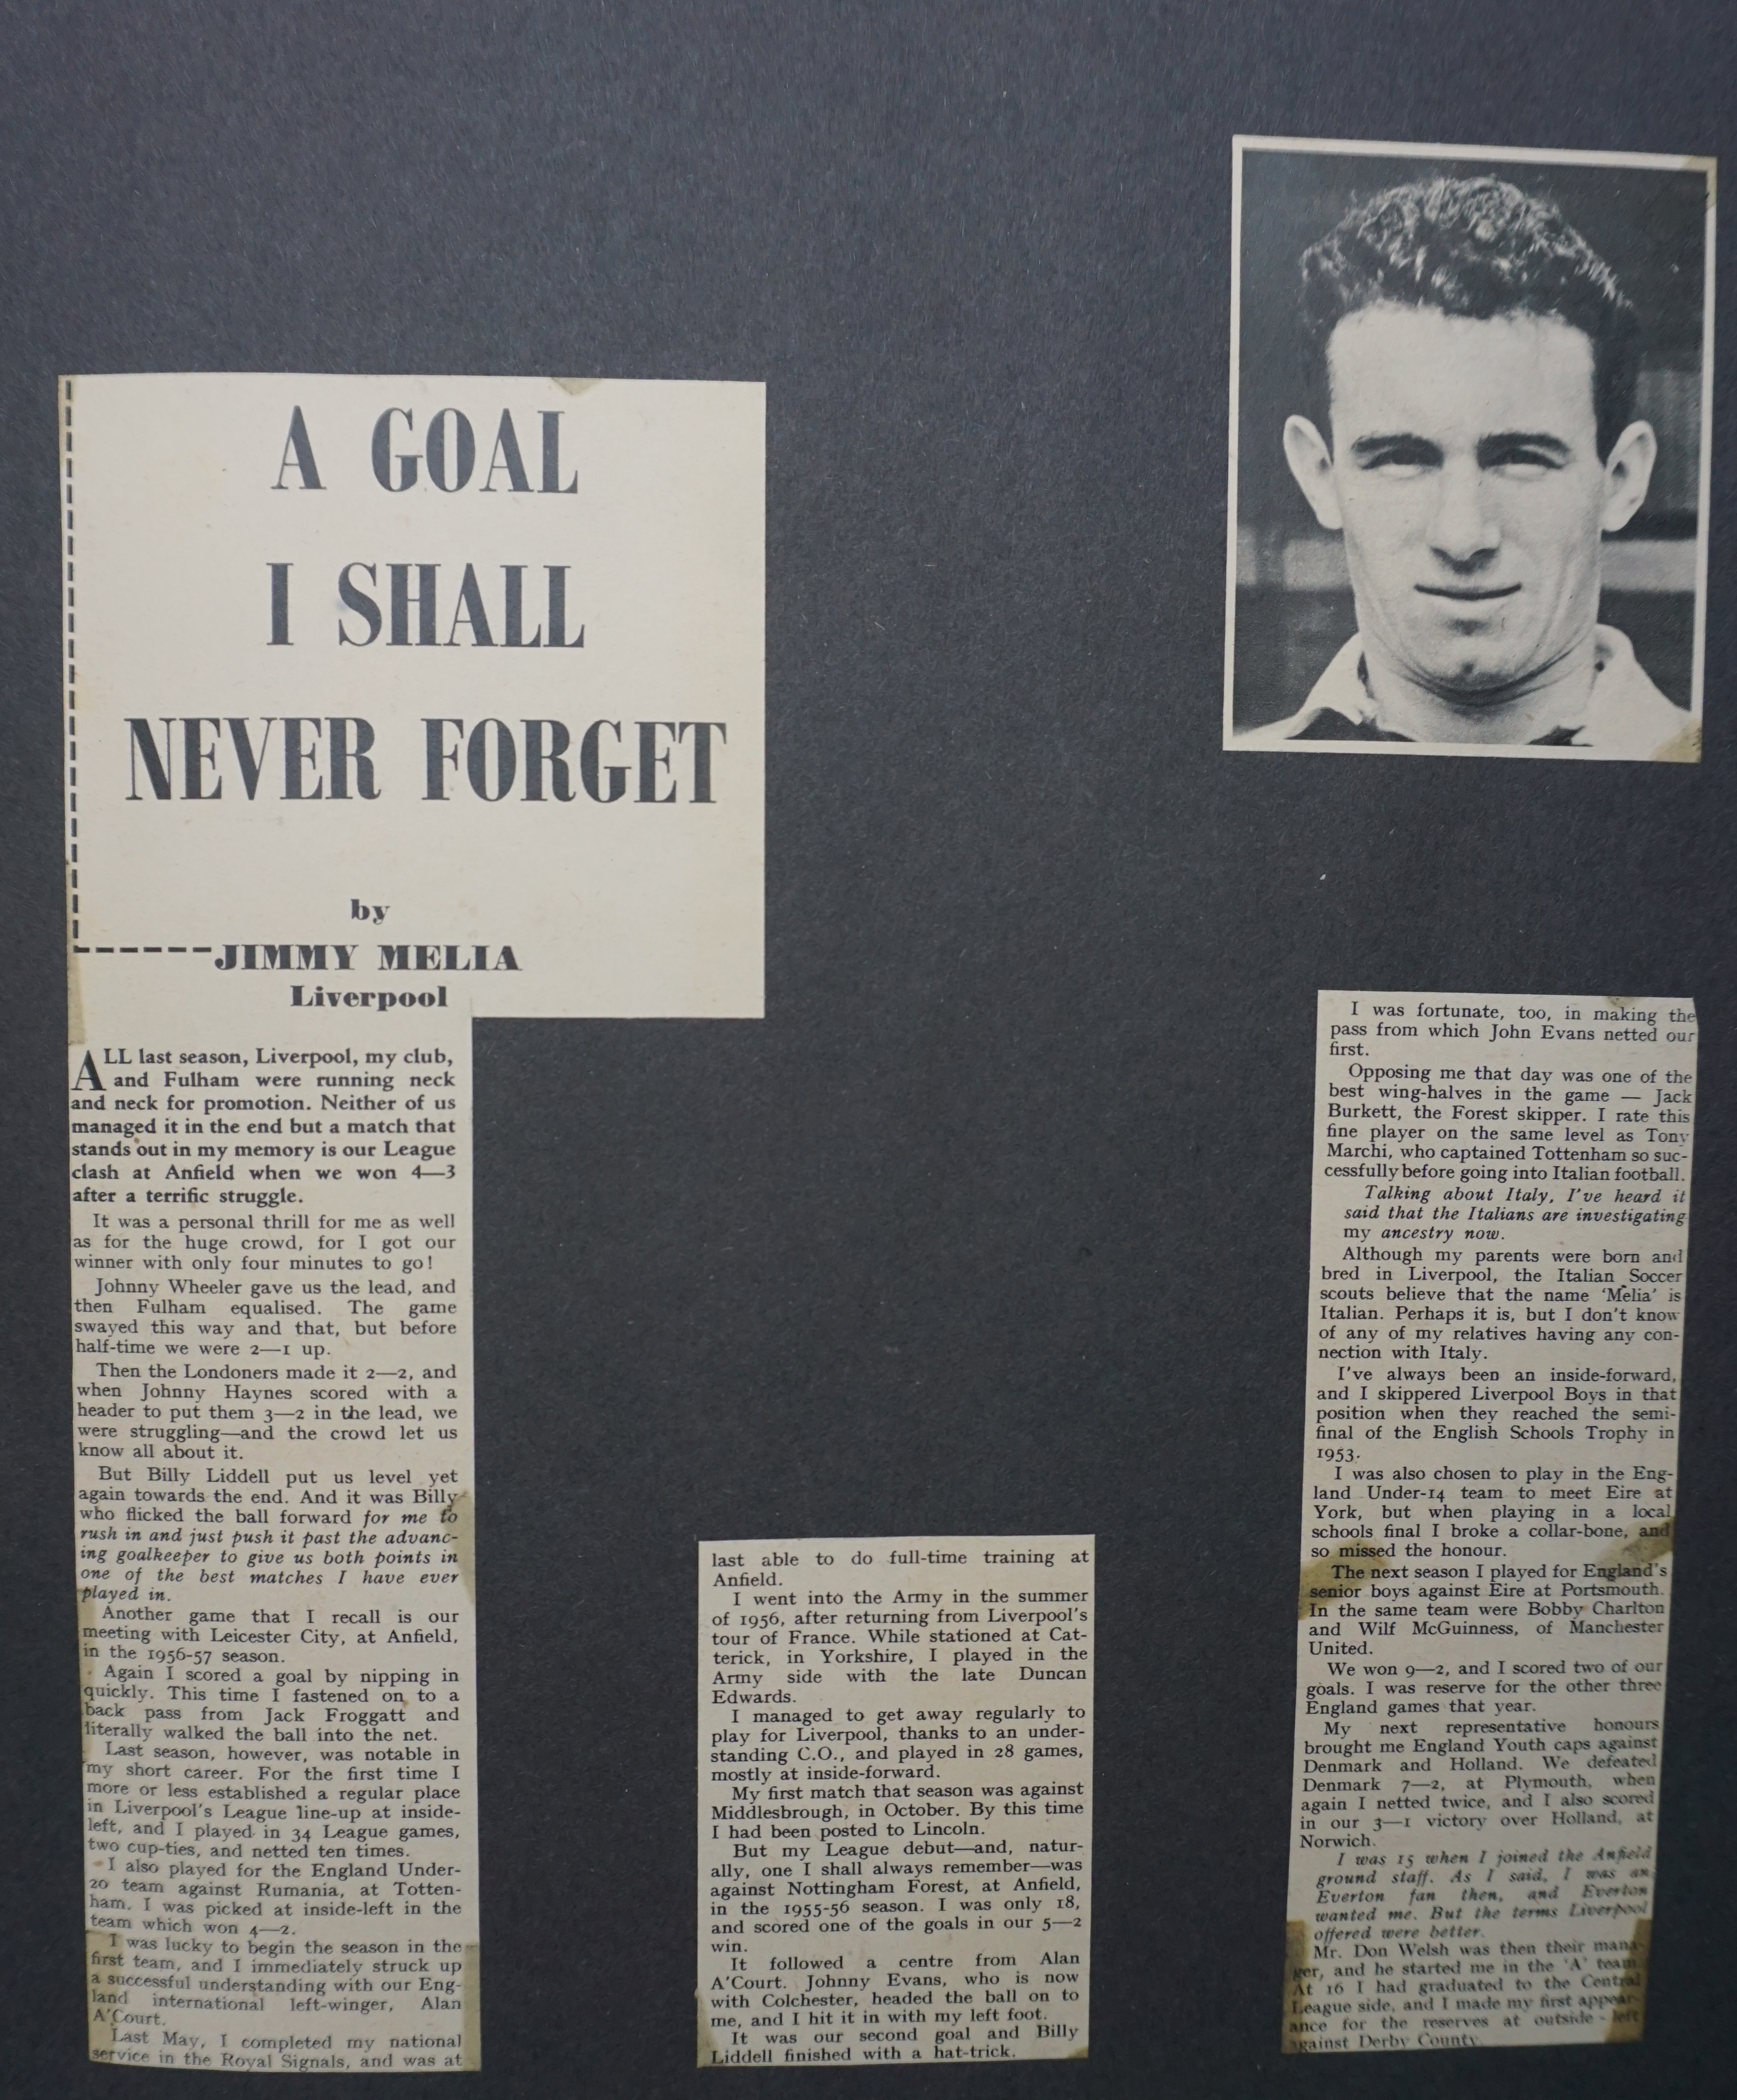 1957 - A goal I shall never forget